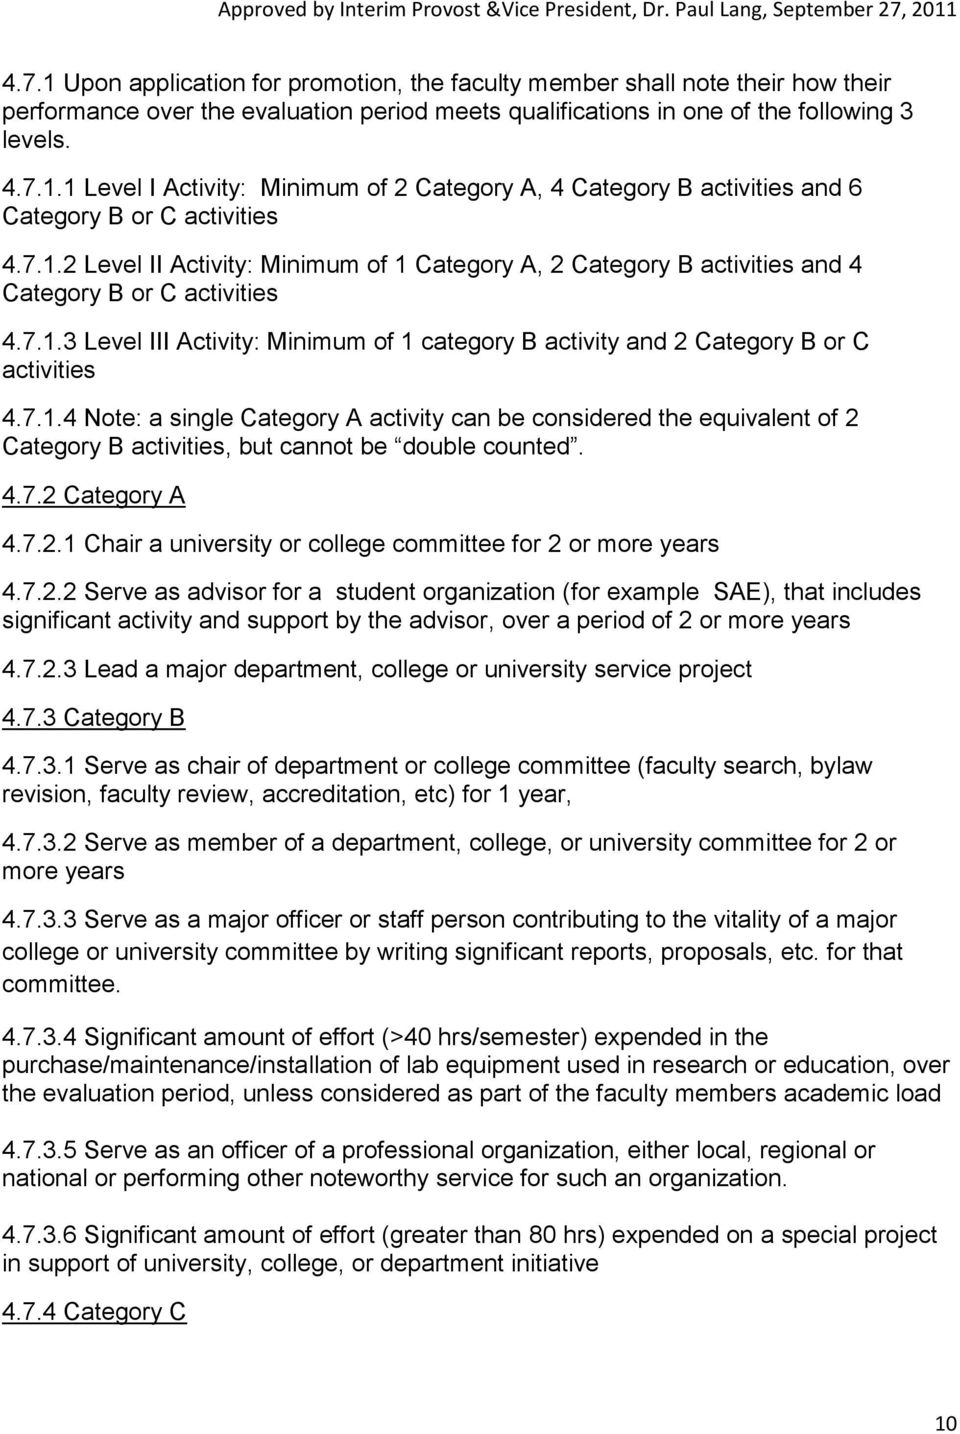 7.1.4 Note: a single Category A activity can be considered the equivalent of 2 Category B activities, but cannot be double counted. 4.7.2 Category A 4.7.2.1 Chair a university or college committee for 2 or more years 4.